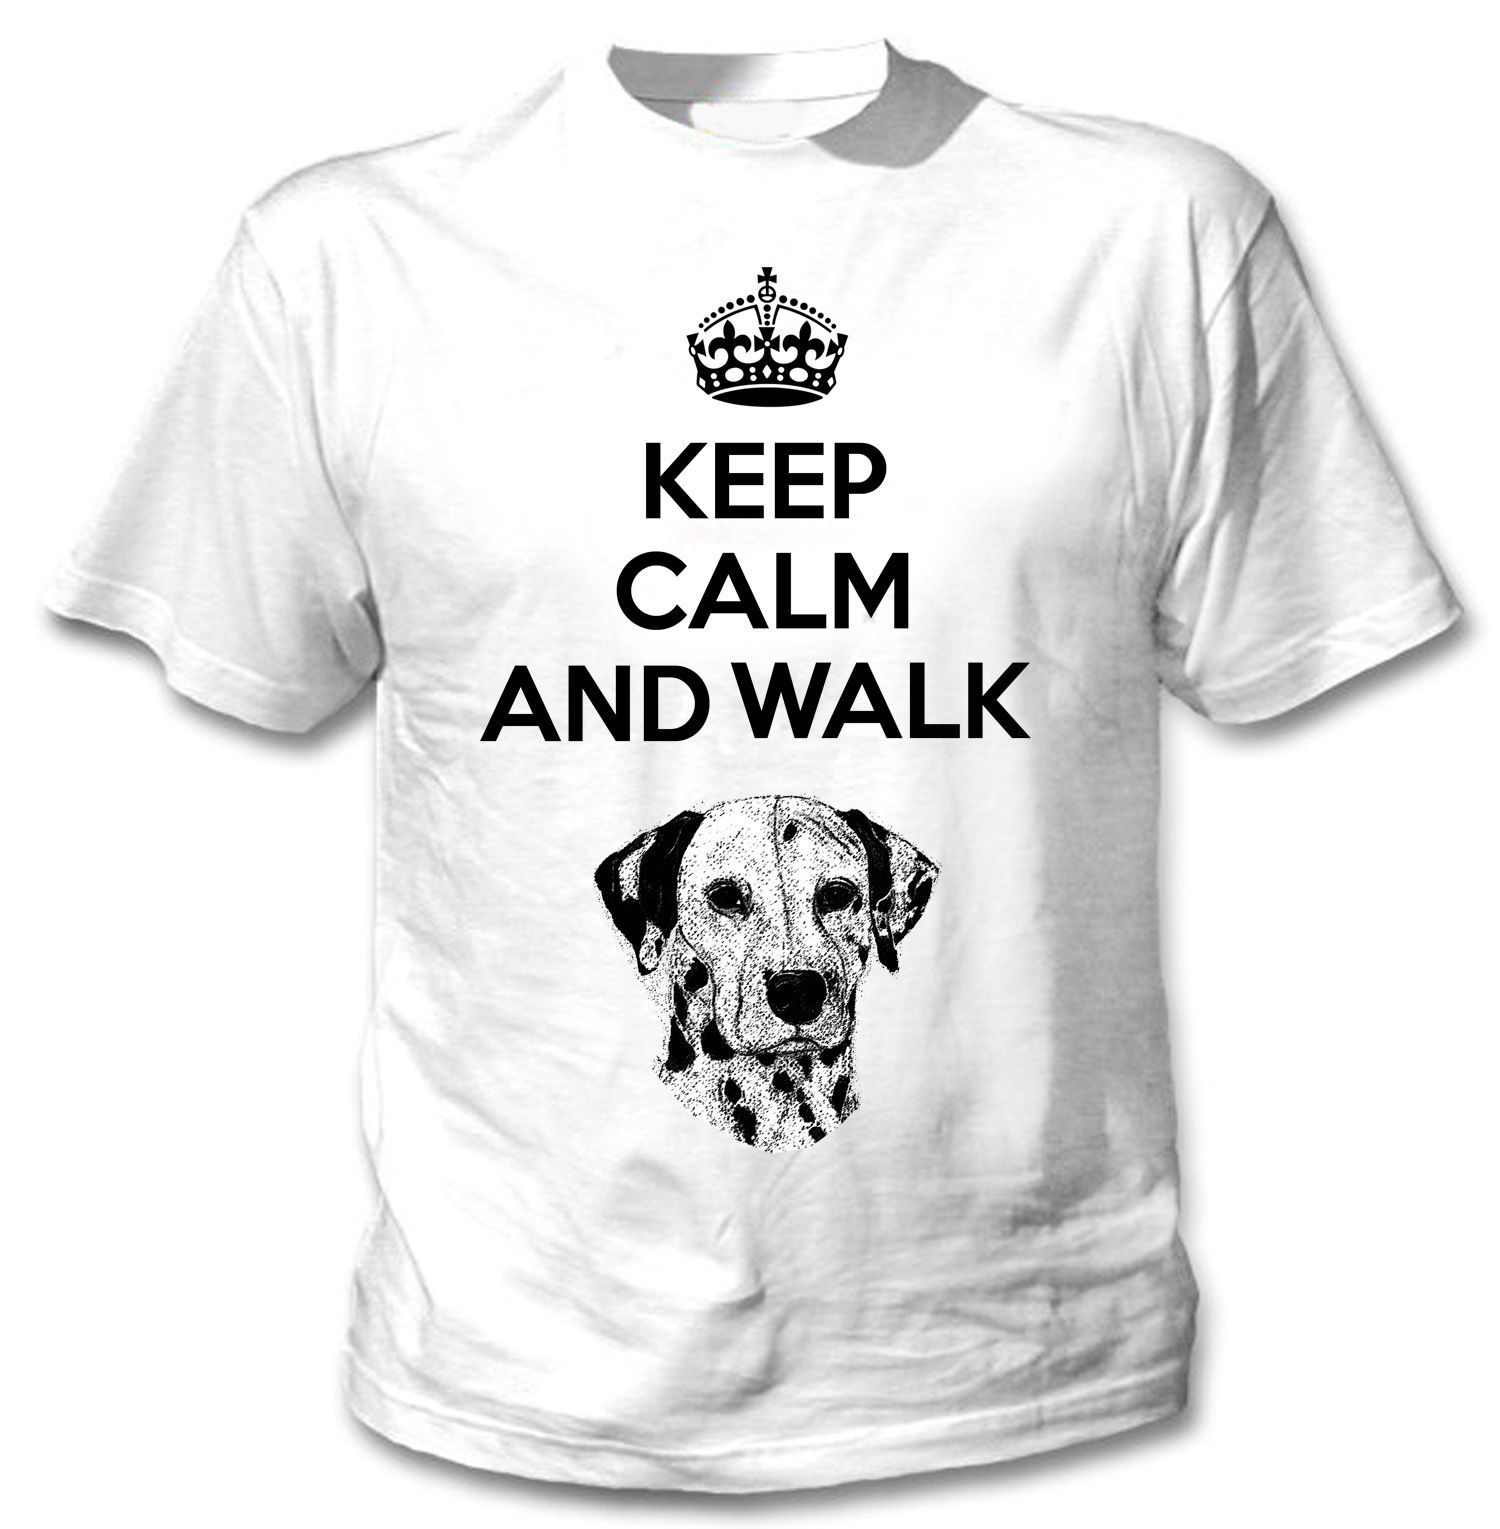 Primary image for KEEP CALM AND WALK THE DALMATIAN - NEW AMAZING GRAPHIC TSHIRT- S-M-L-XL-XXL